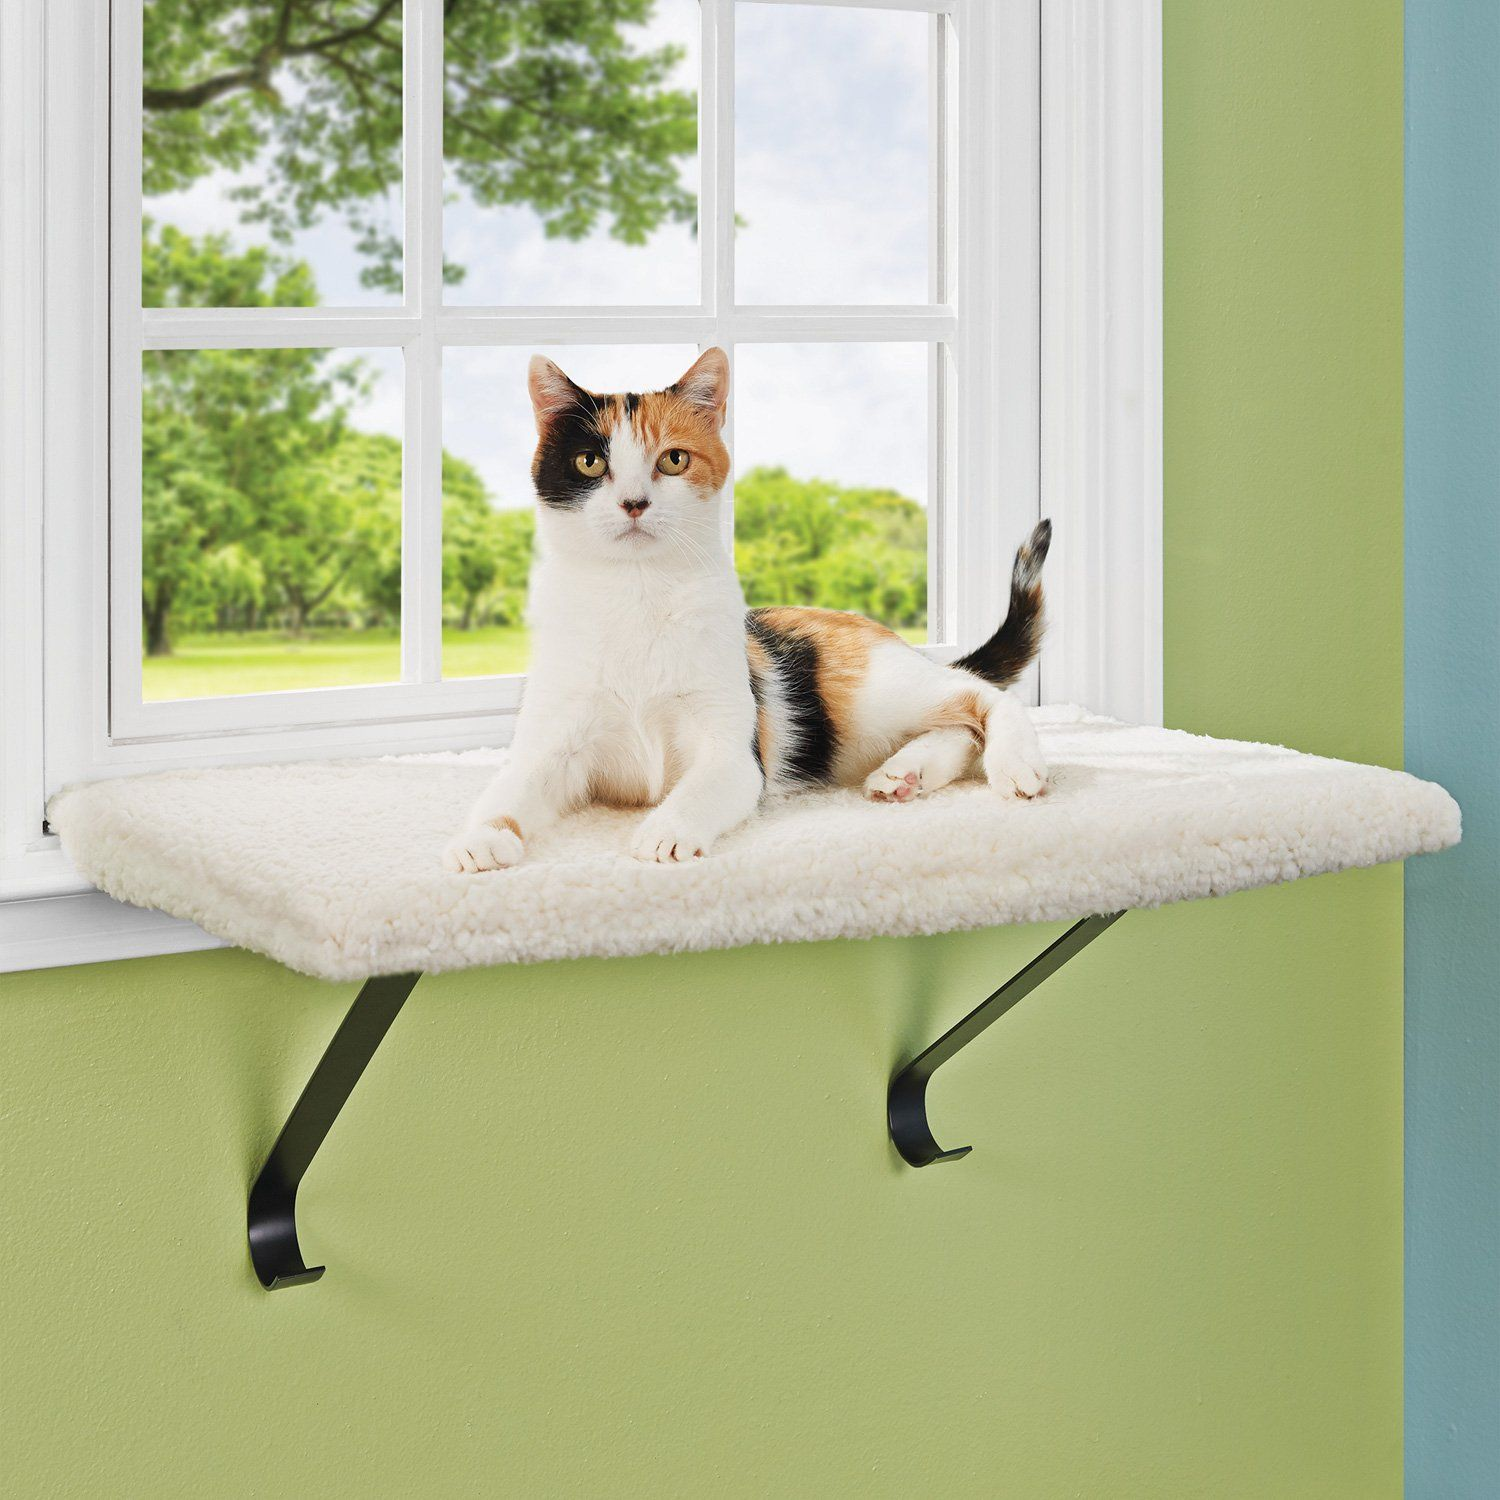 You Me Scout Snooze Window Cat Perch Petco Home Pinterest